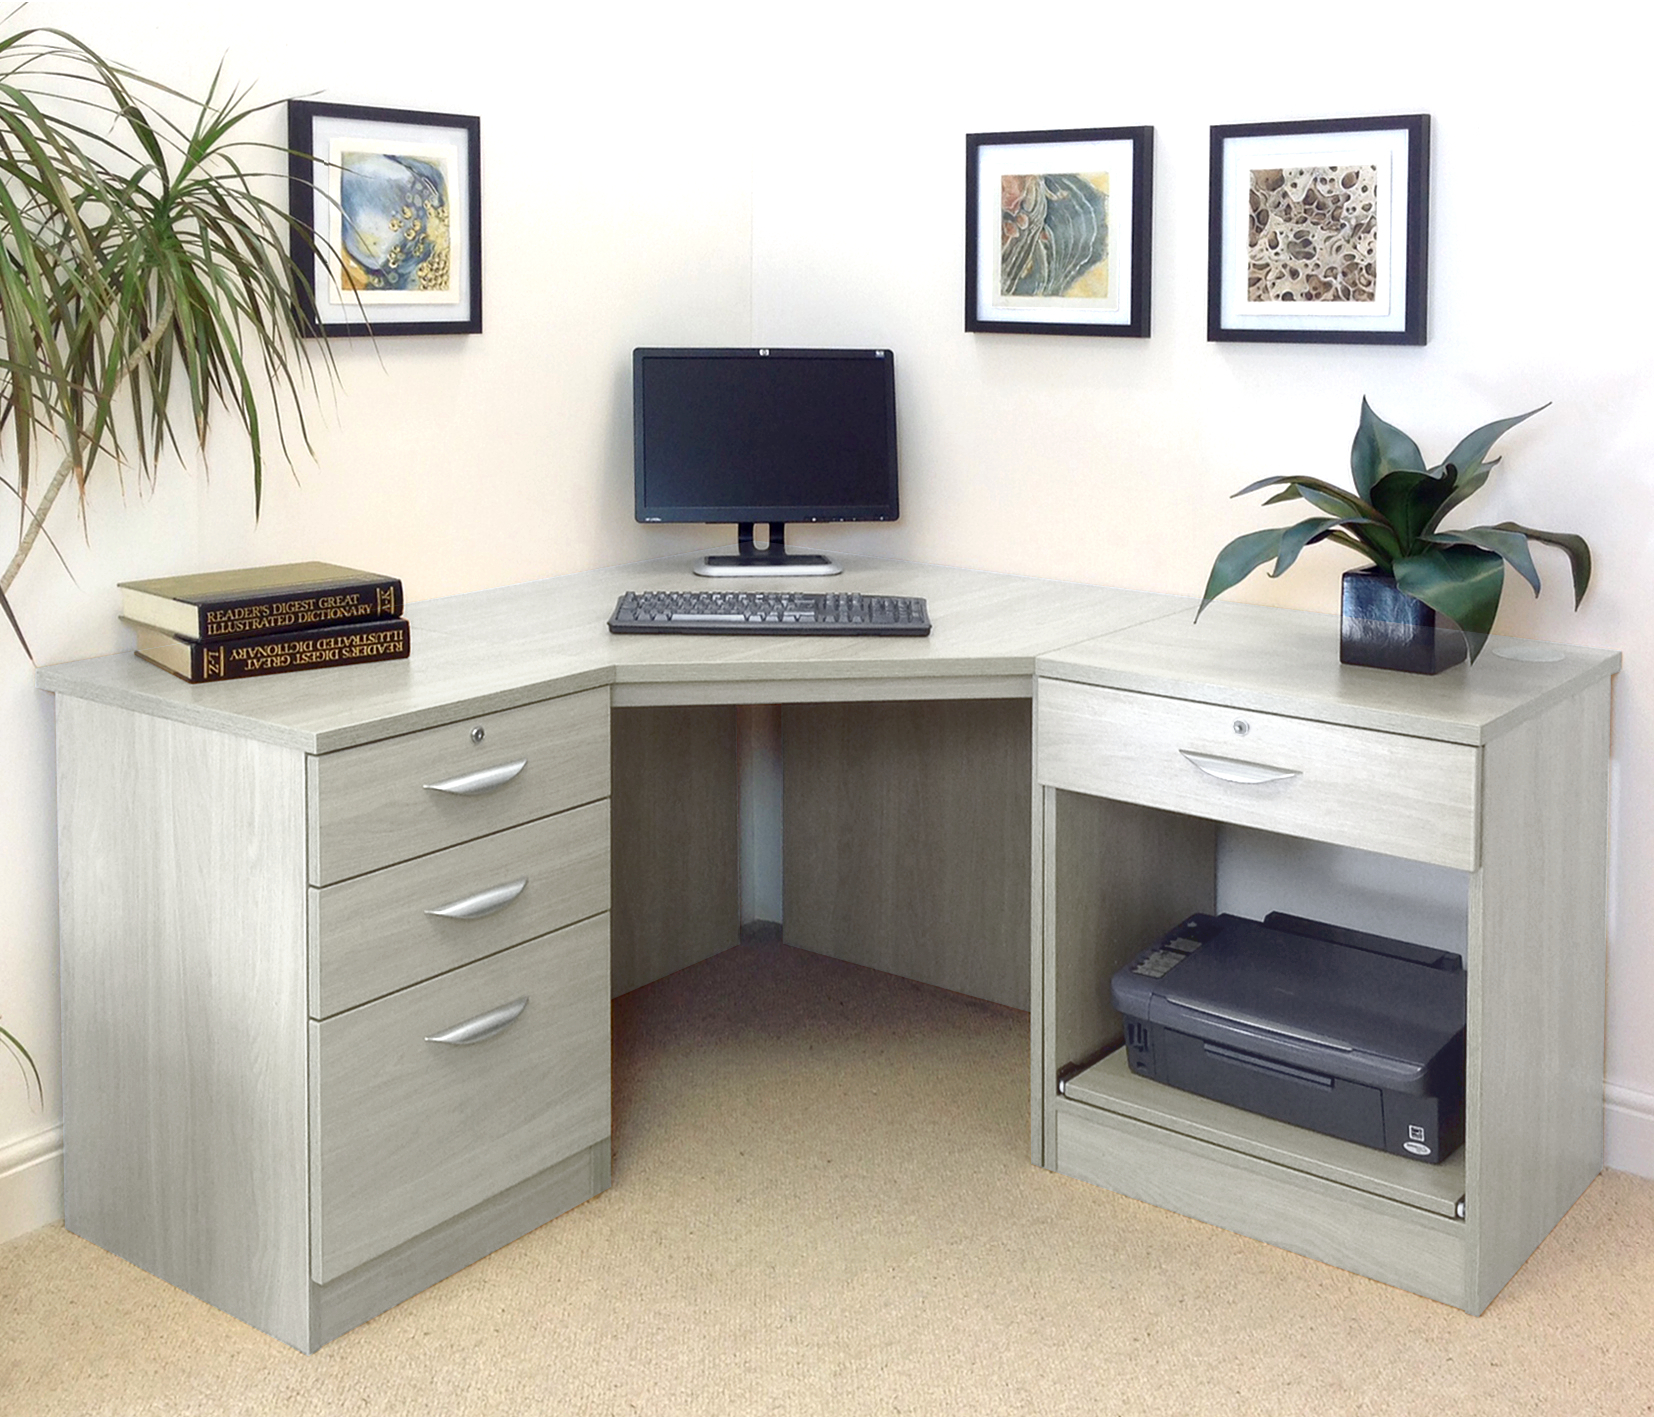 Office furniture and cabinets from Arun Furnishers in Littlehampton